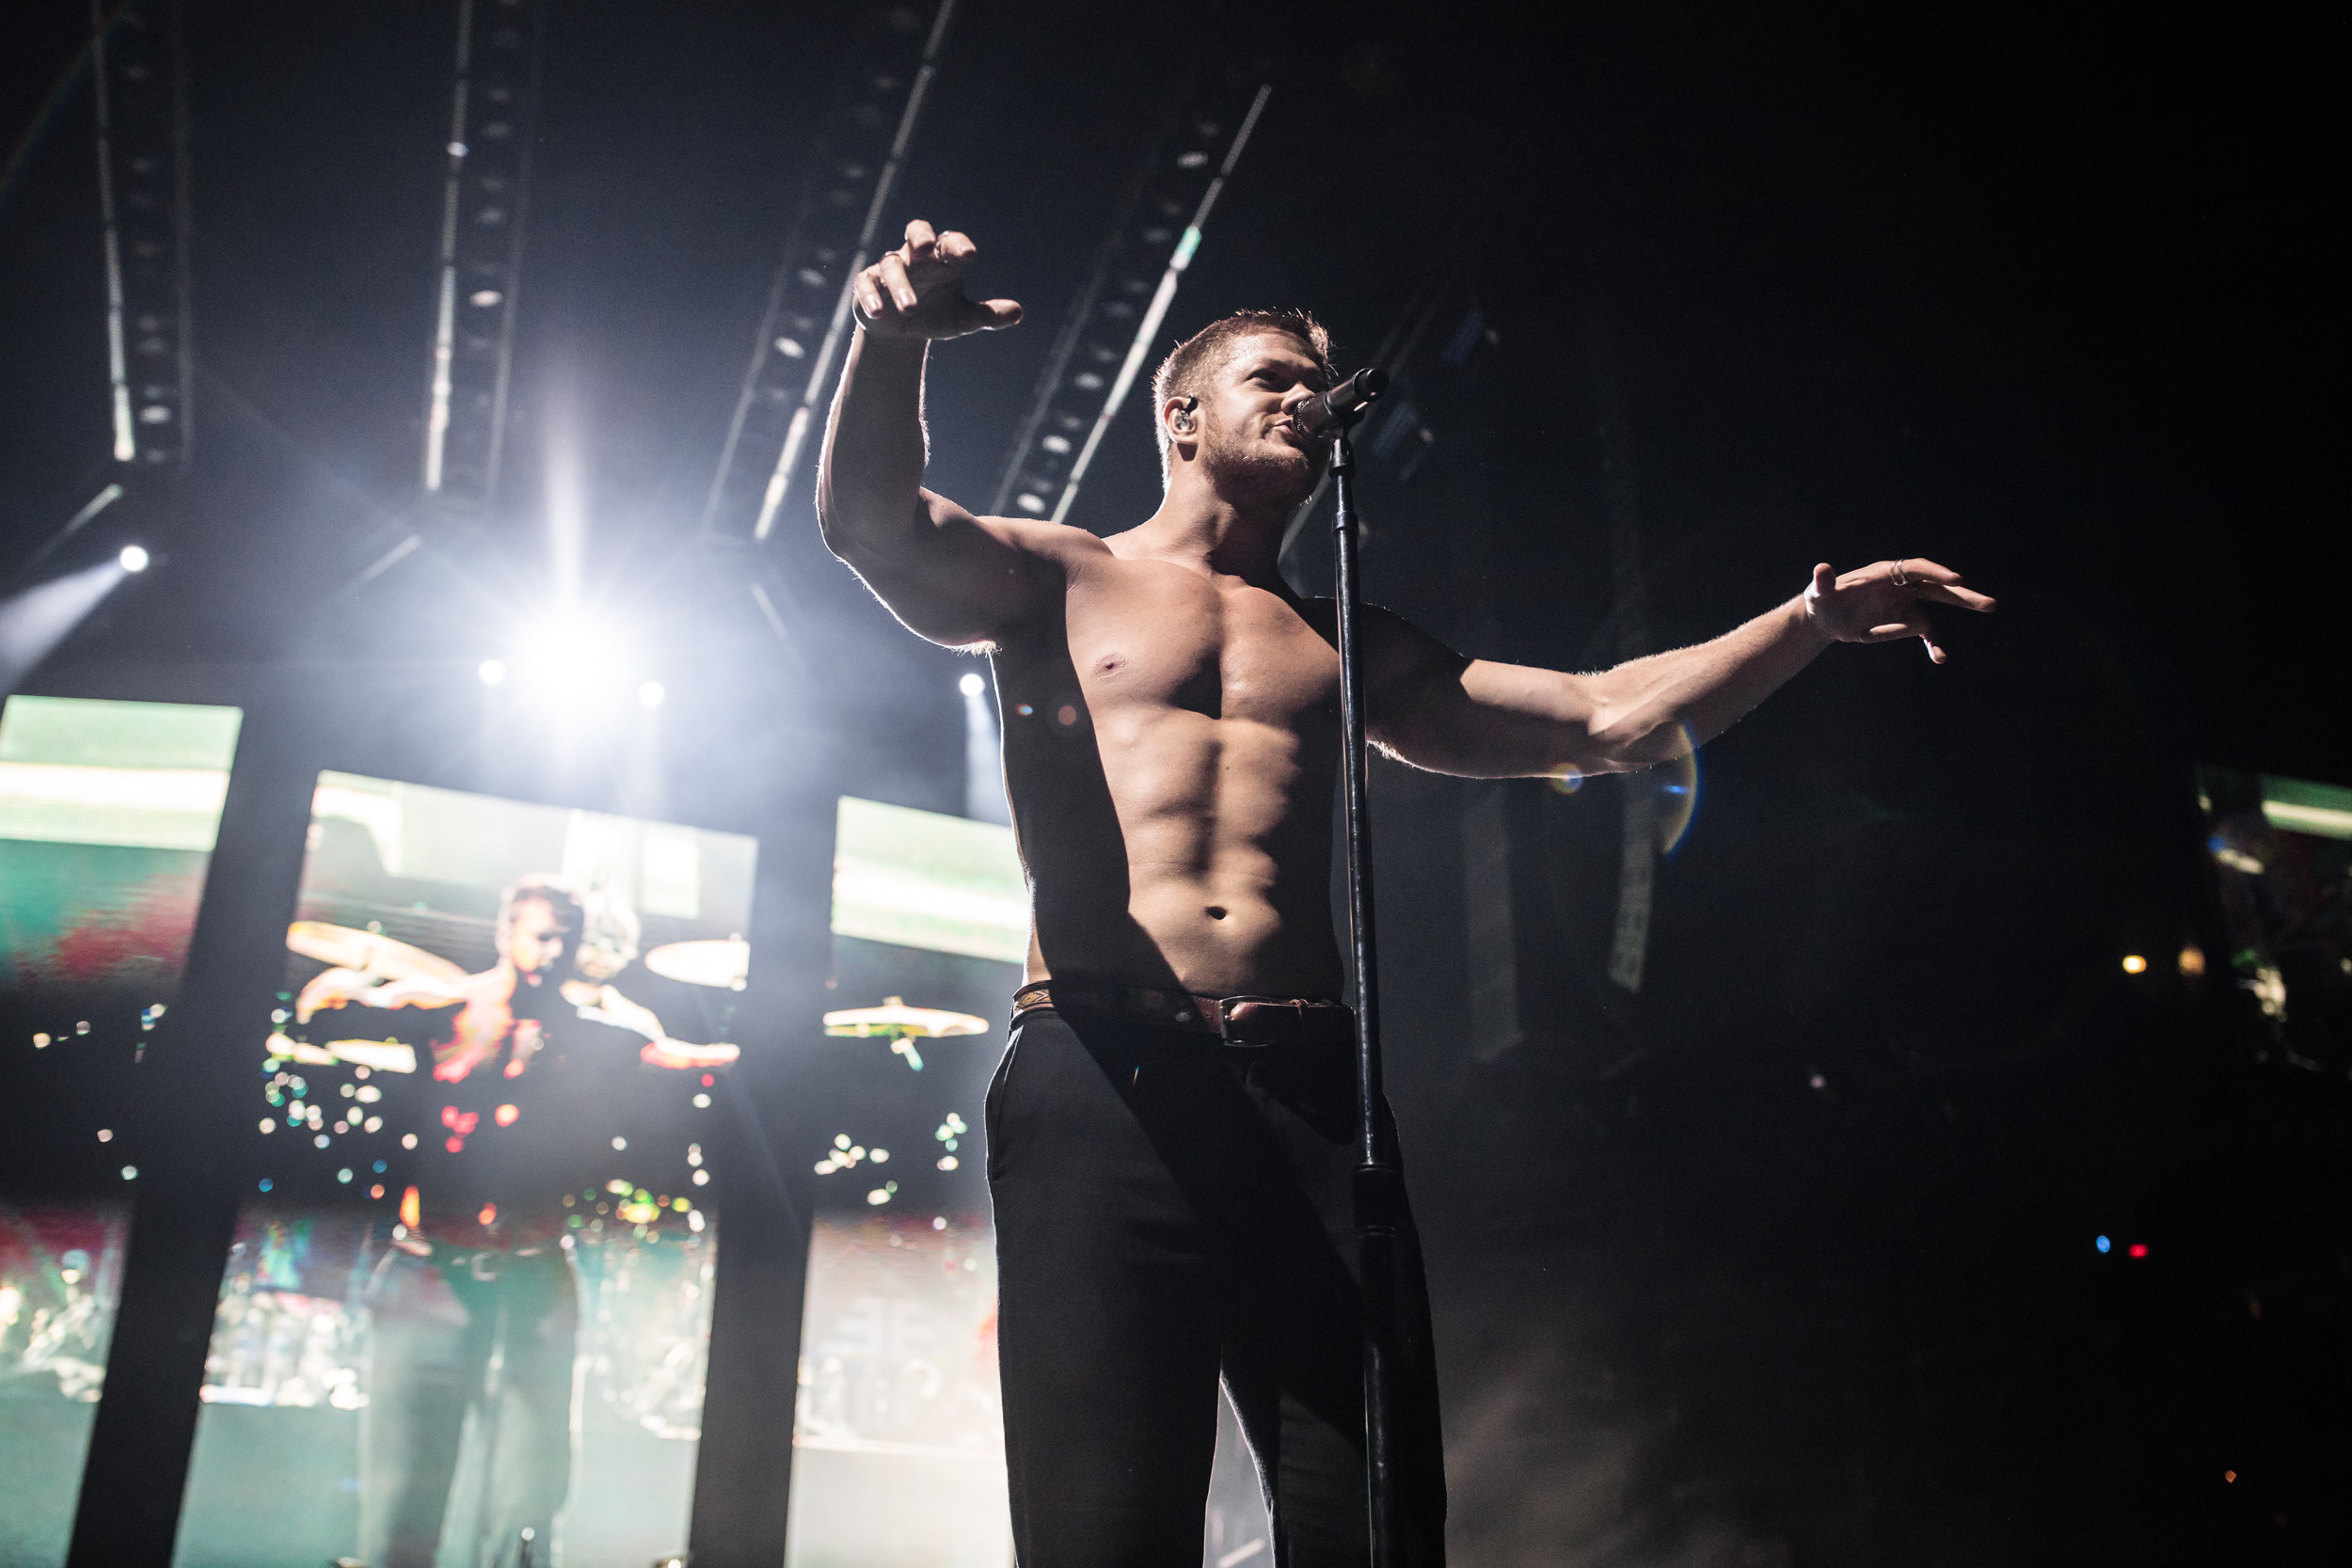 NA-07112018-Imagine Dragons-12.jpg